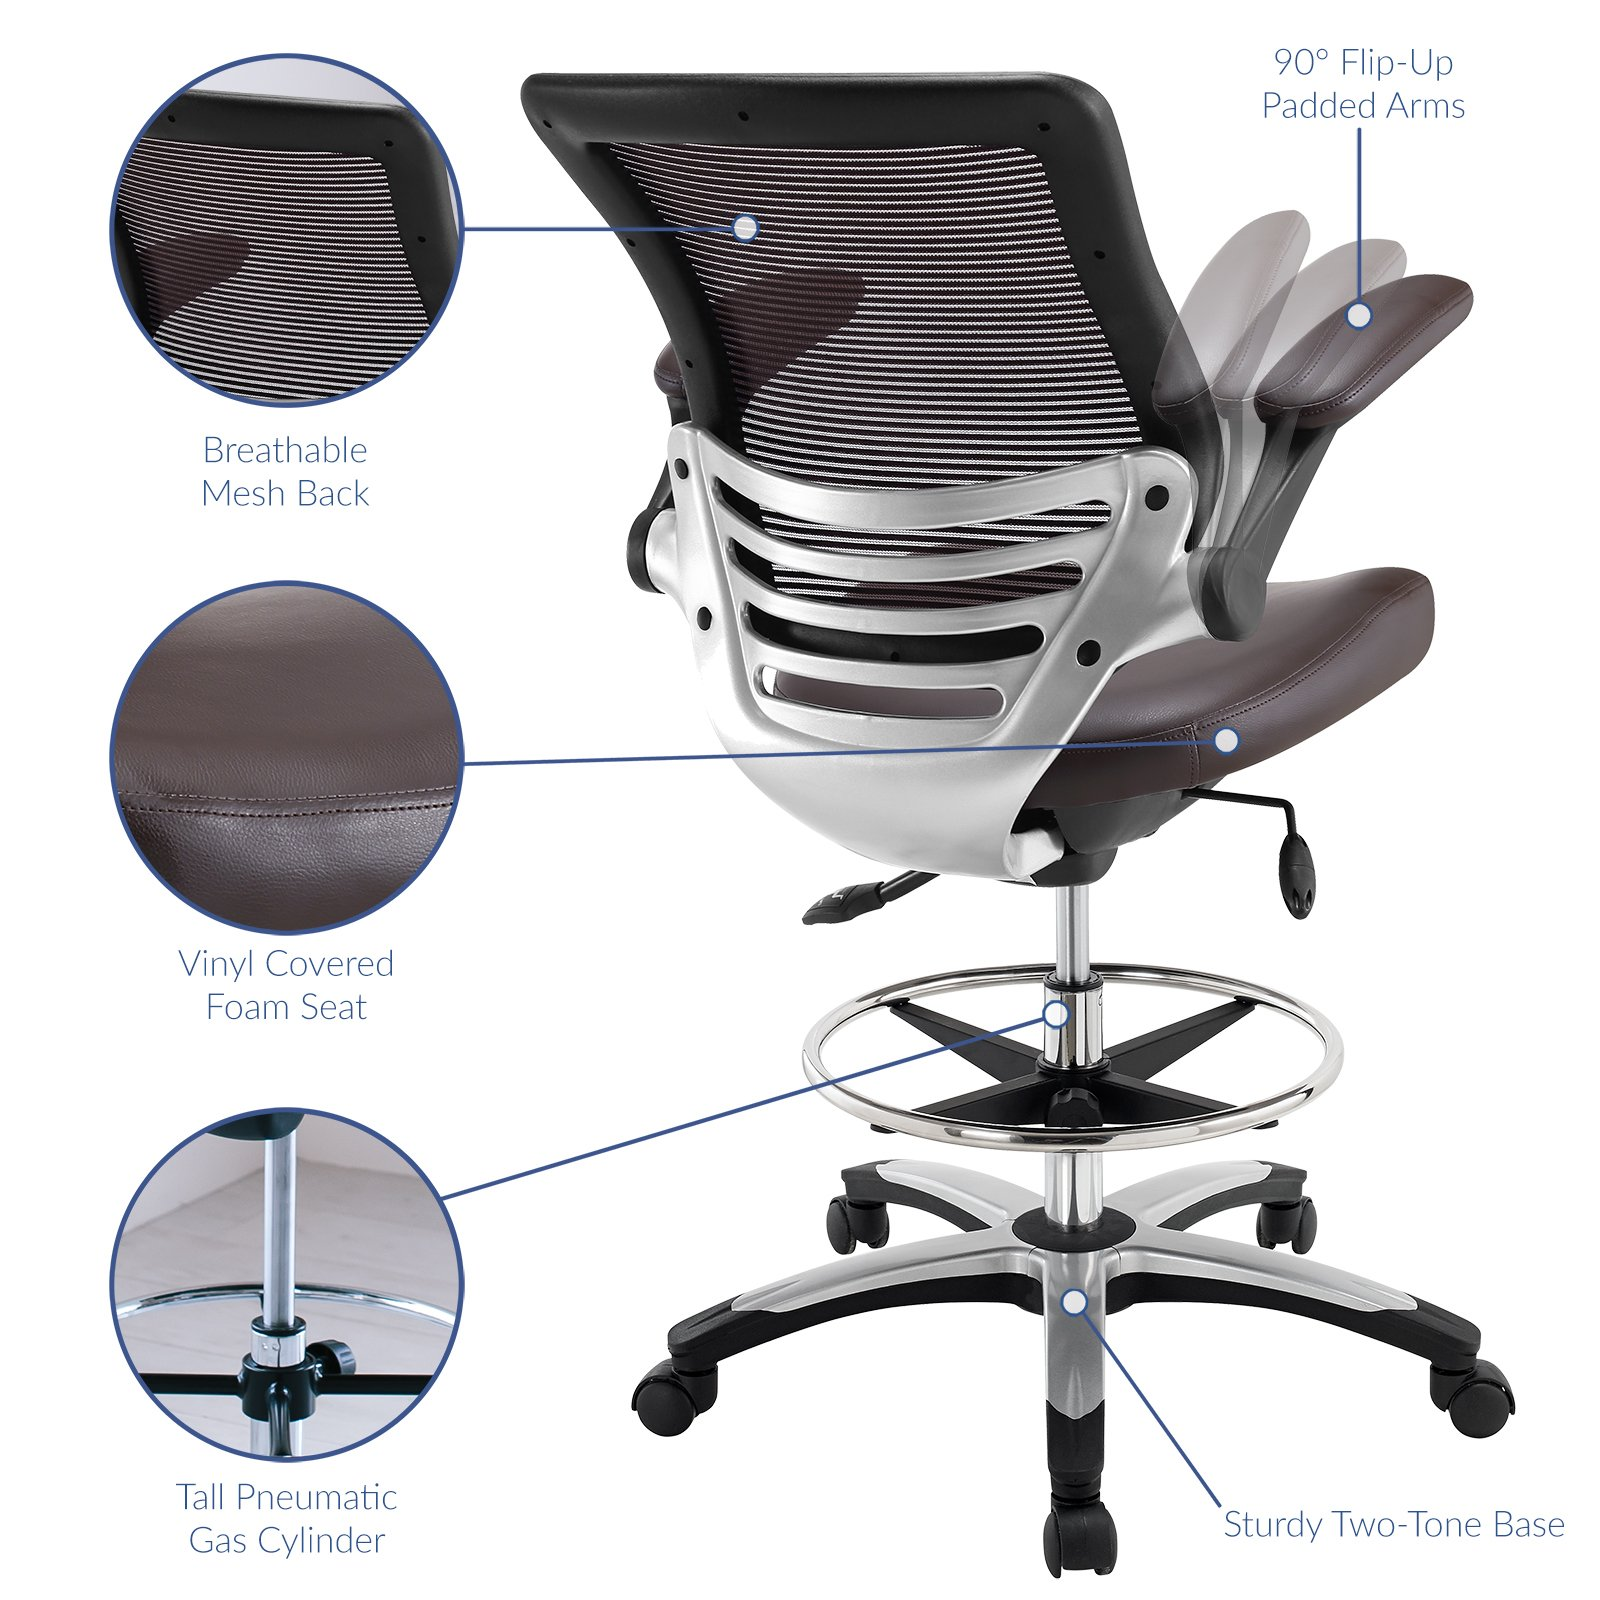 Modway Edge Drafting Chair In Brown - Reception Desk Chair - Tall Office Chair For Adjustable Standing Desks - Flip-Up Arm Drafting Table Chair by Modway (Image #3)